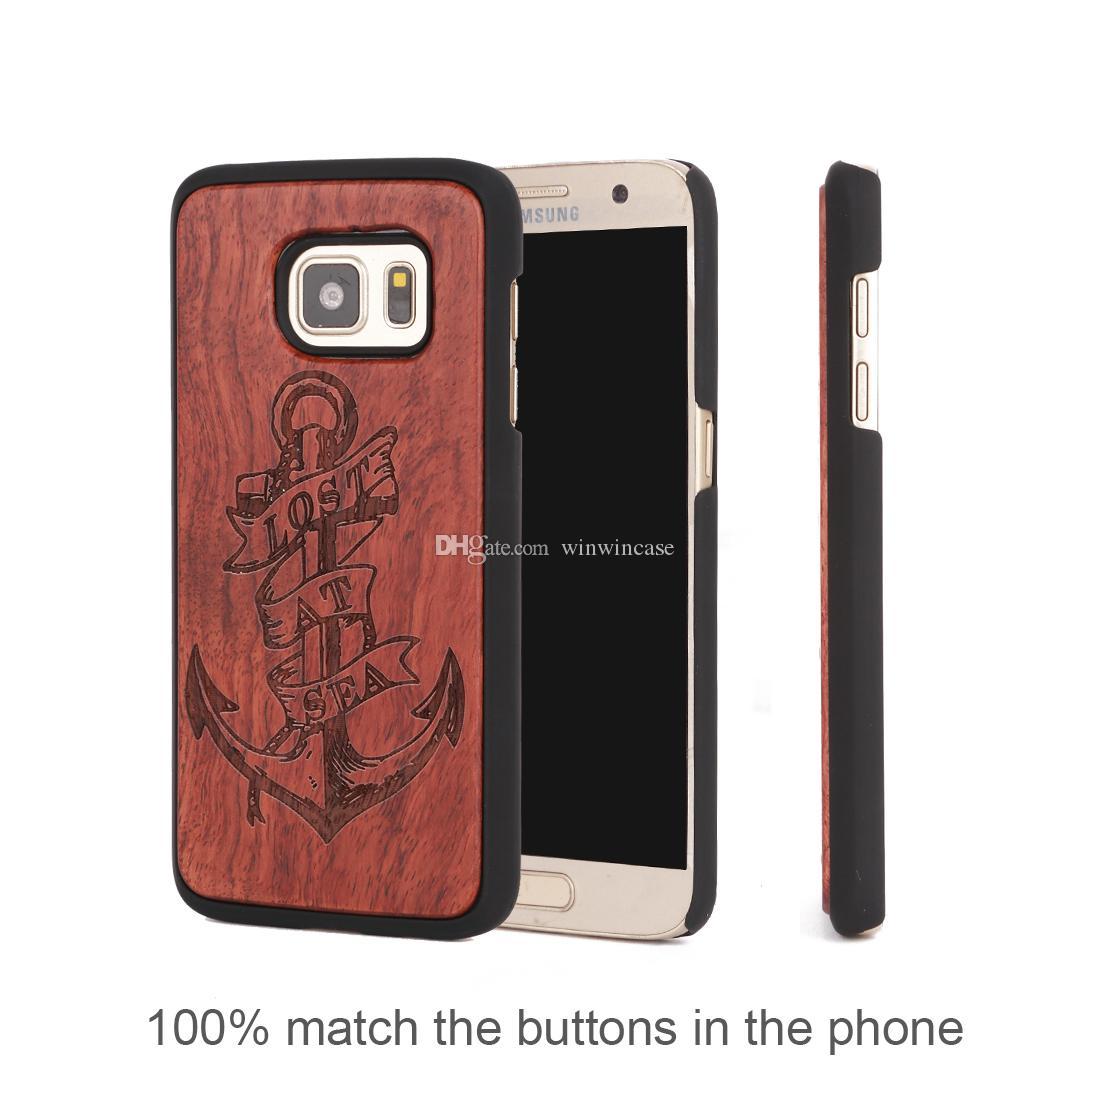 For Samsung galaxy s7 edge note 5 s8 plus s6 edge wood cell phone cases laser engrave phones cover Shenzhen phone accessory supplier